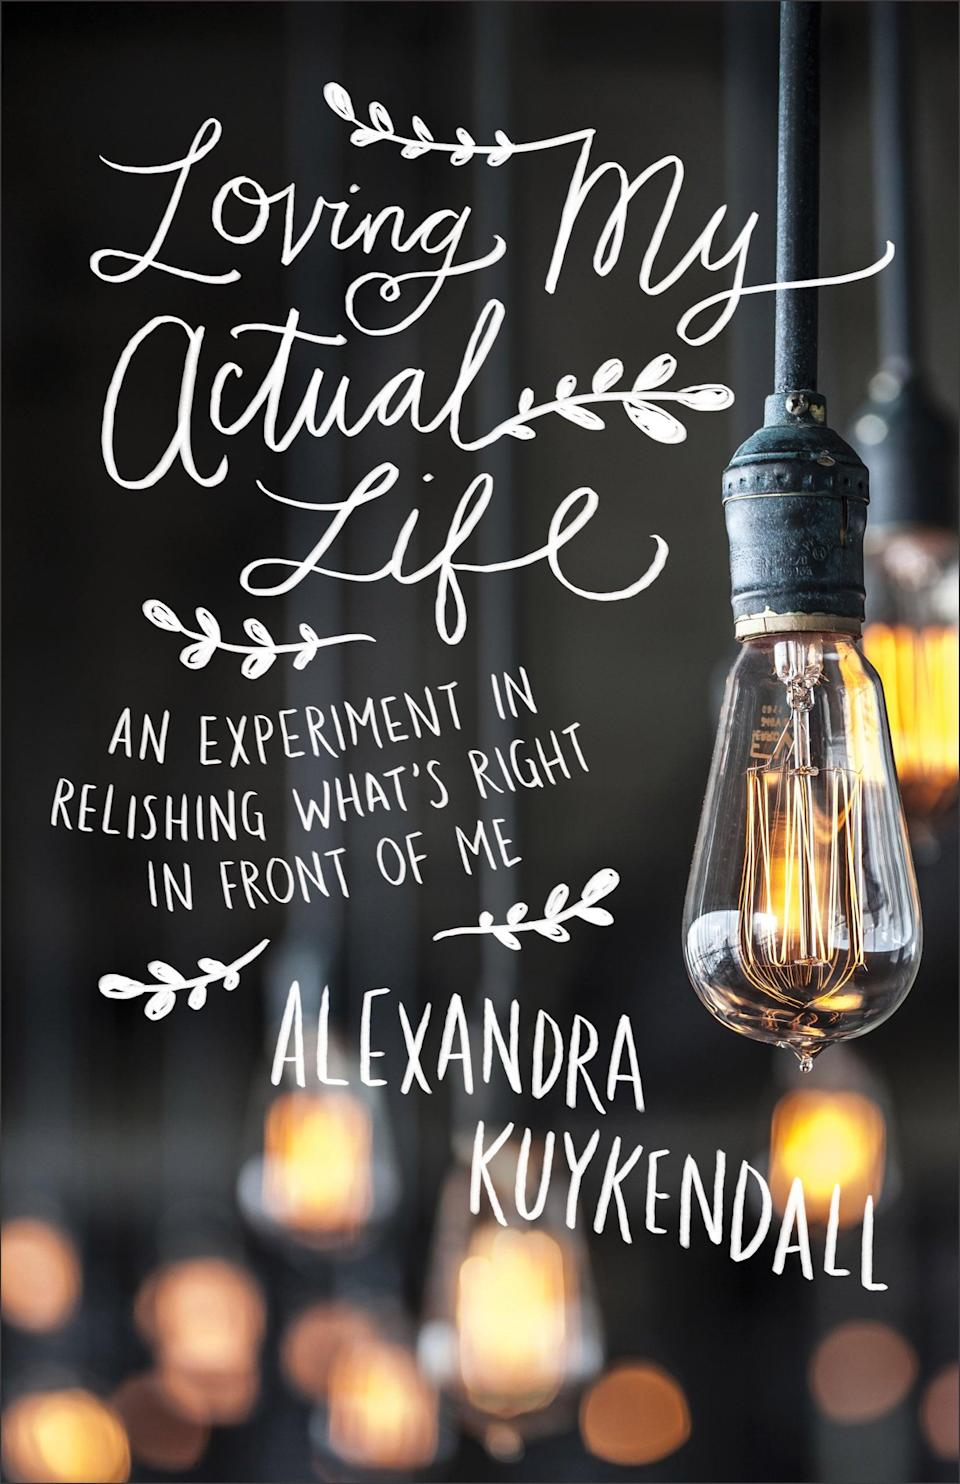 """<p><a href=""""http://alexandrakuykendall.com/alex/"""" class=""""link rapid-noclick-resp"""" rel=""""nofollow noopener"""" target=""""_blank"""" data-ylk=""""slk:Alexandra Kuykendall"""">Alexandra Kuykendall</a>, writer, blogger, and mother to four daughters, was feeling overextended and drained. She decided to do an experiment on her own life. She made the decision to take nine months to """"rekindle her love of her ordinary life."""" What emerged was her book <strong><span>Loving My Actual Life</span></strong>. Kuykendall's book not only acts as inspiration but also a how-to book about incorporating one new thing every month that will help you uncover a more fulfilling life. If you're looking to reevaluate the weight of expectations and fully embracing the importance of living in the now, this is the perfect read for you!</p>"""